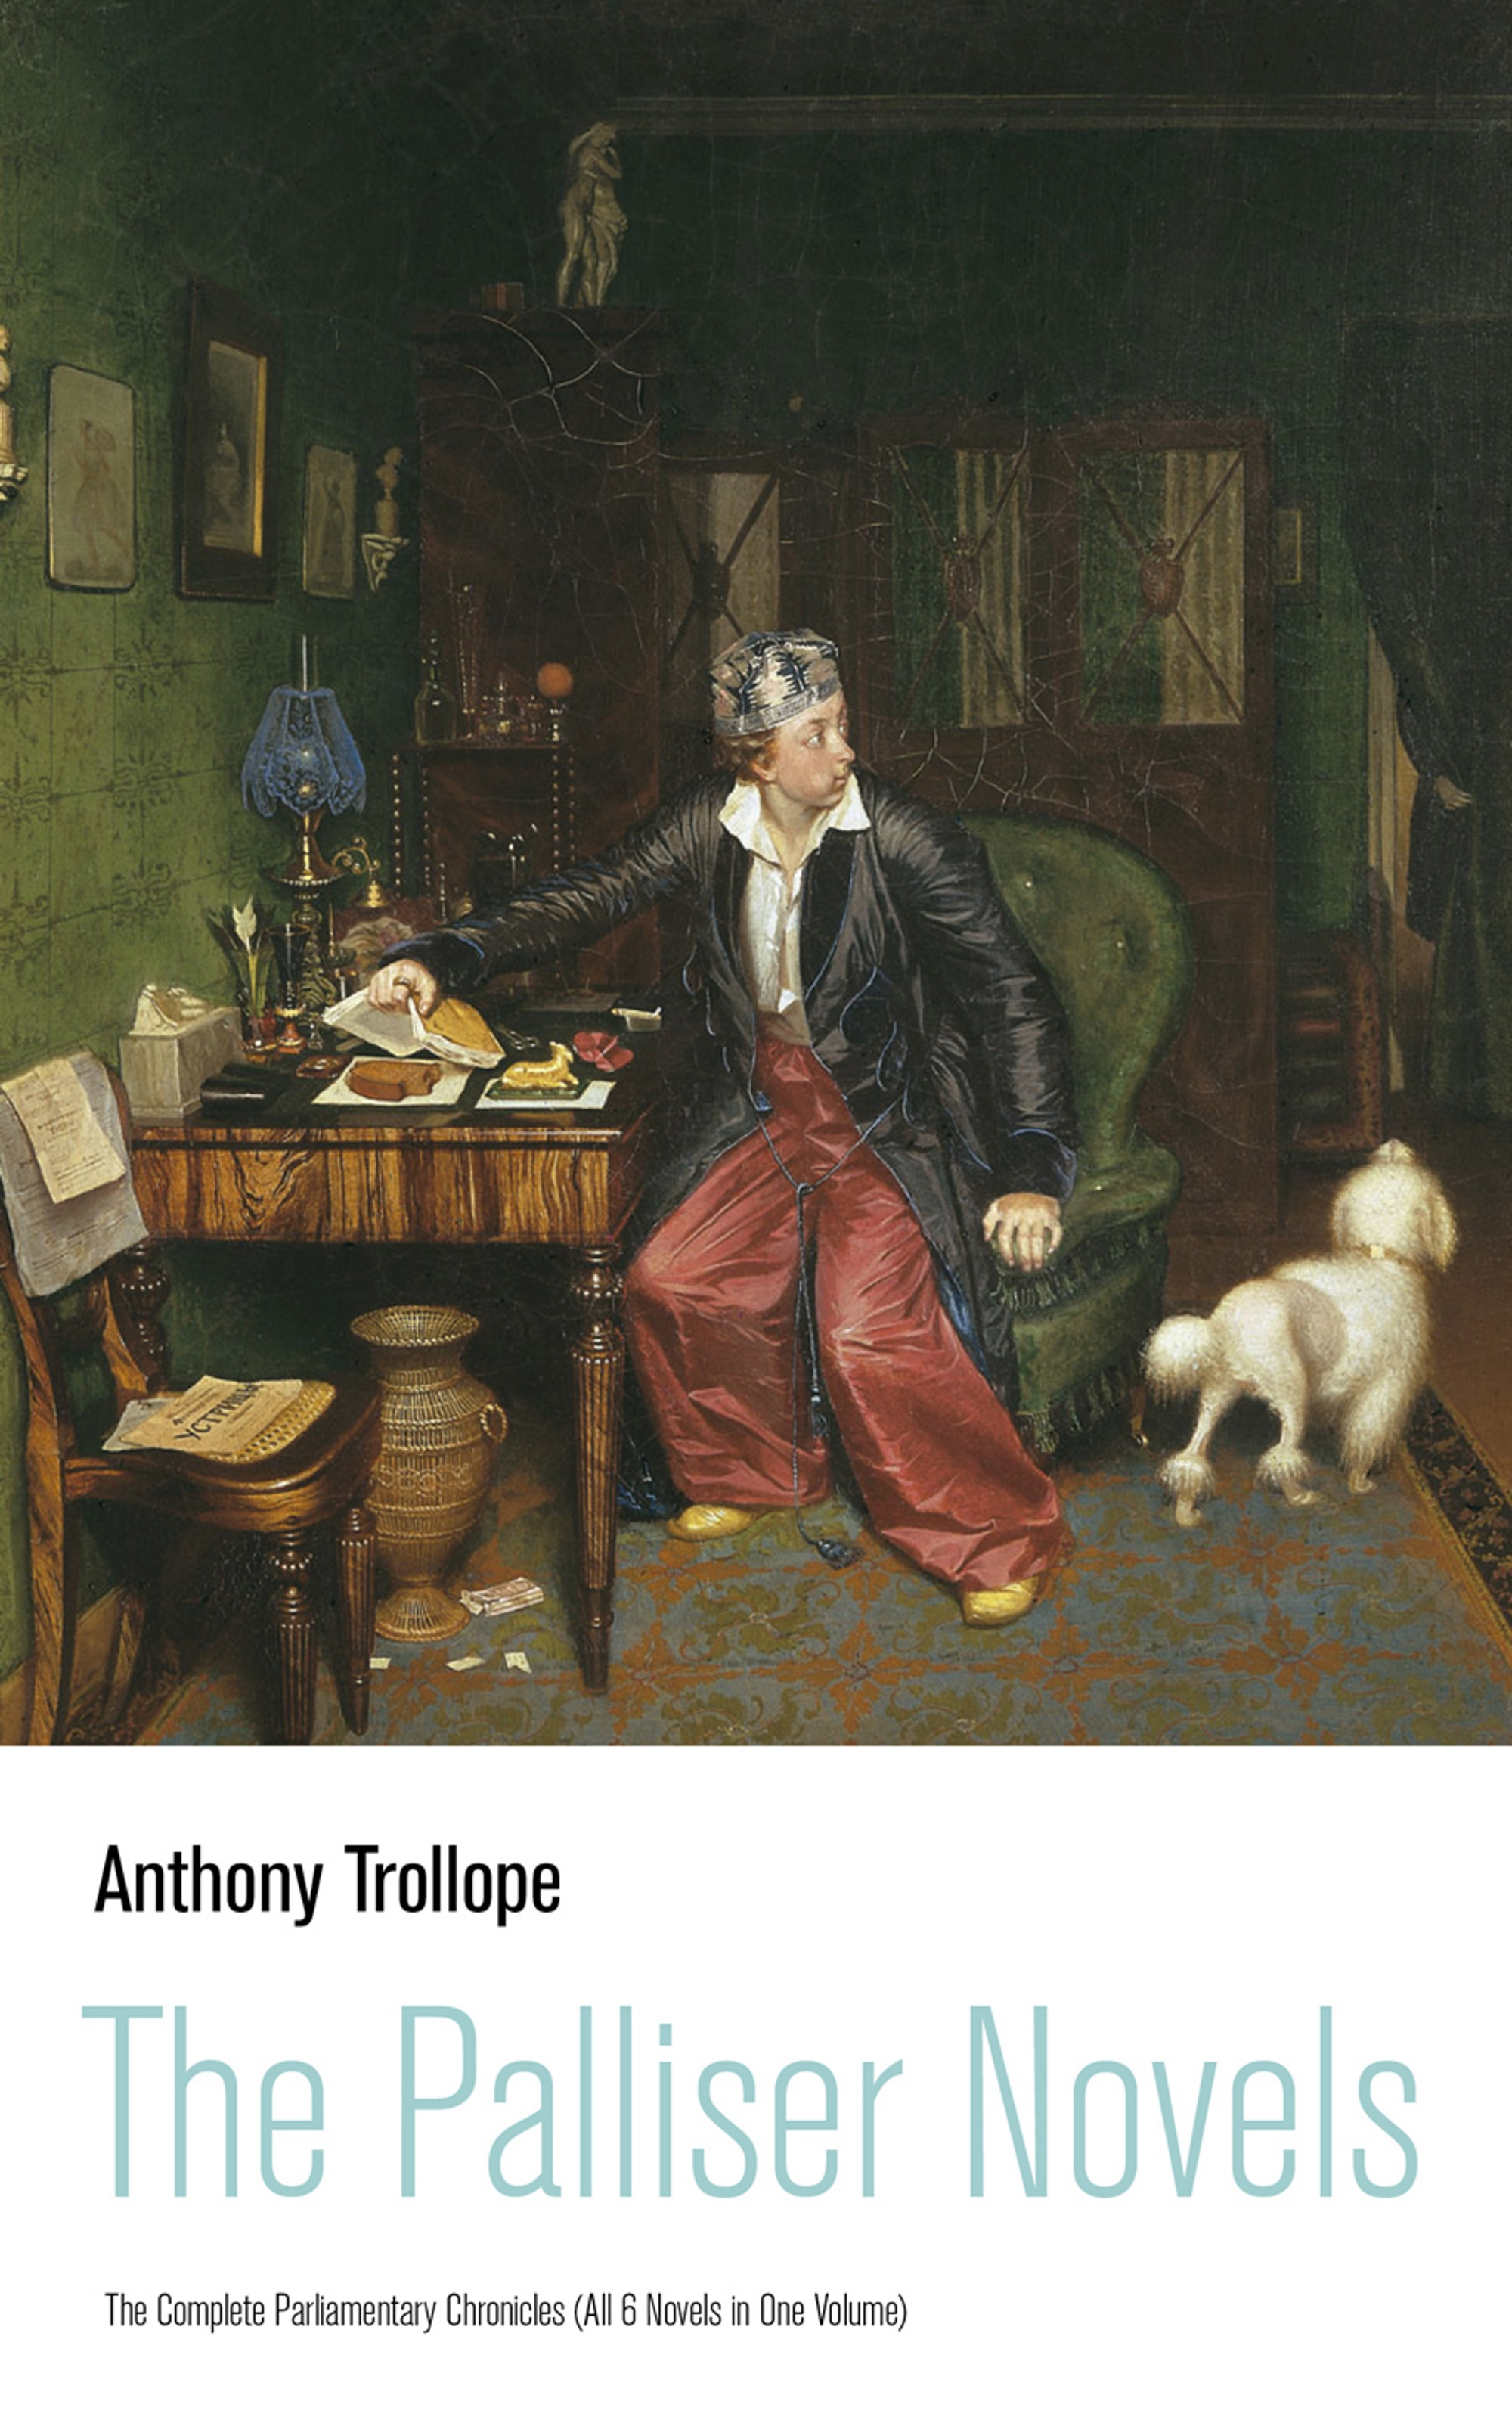 Anthony Trollope The Palliser Novels: The Complete Parliamentary Chronicles (All 6 Novels in One Volume) все цены